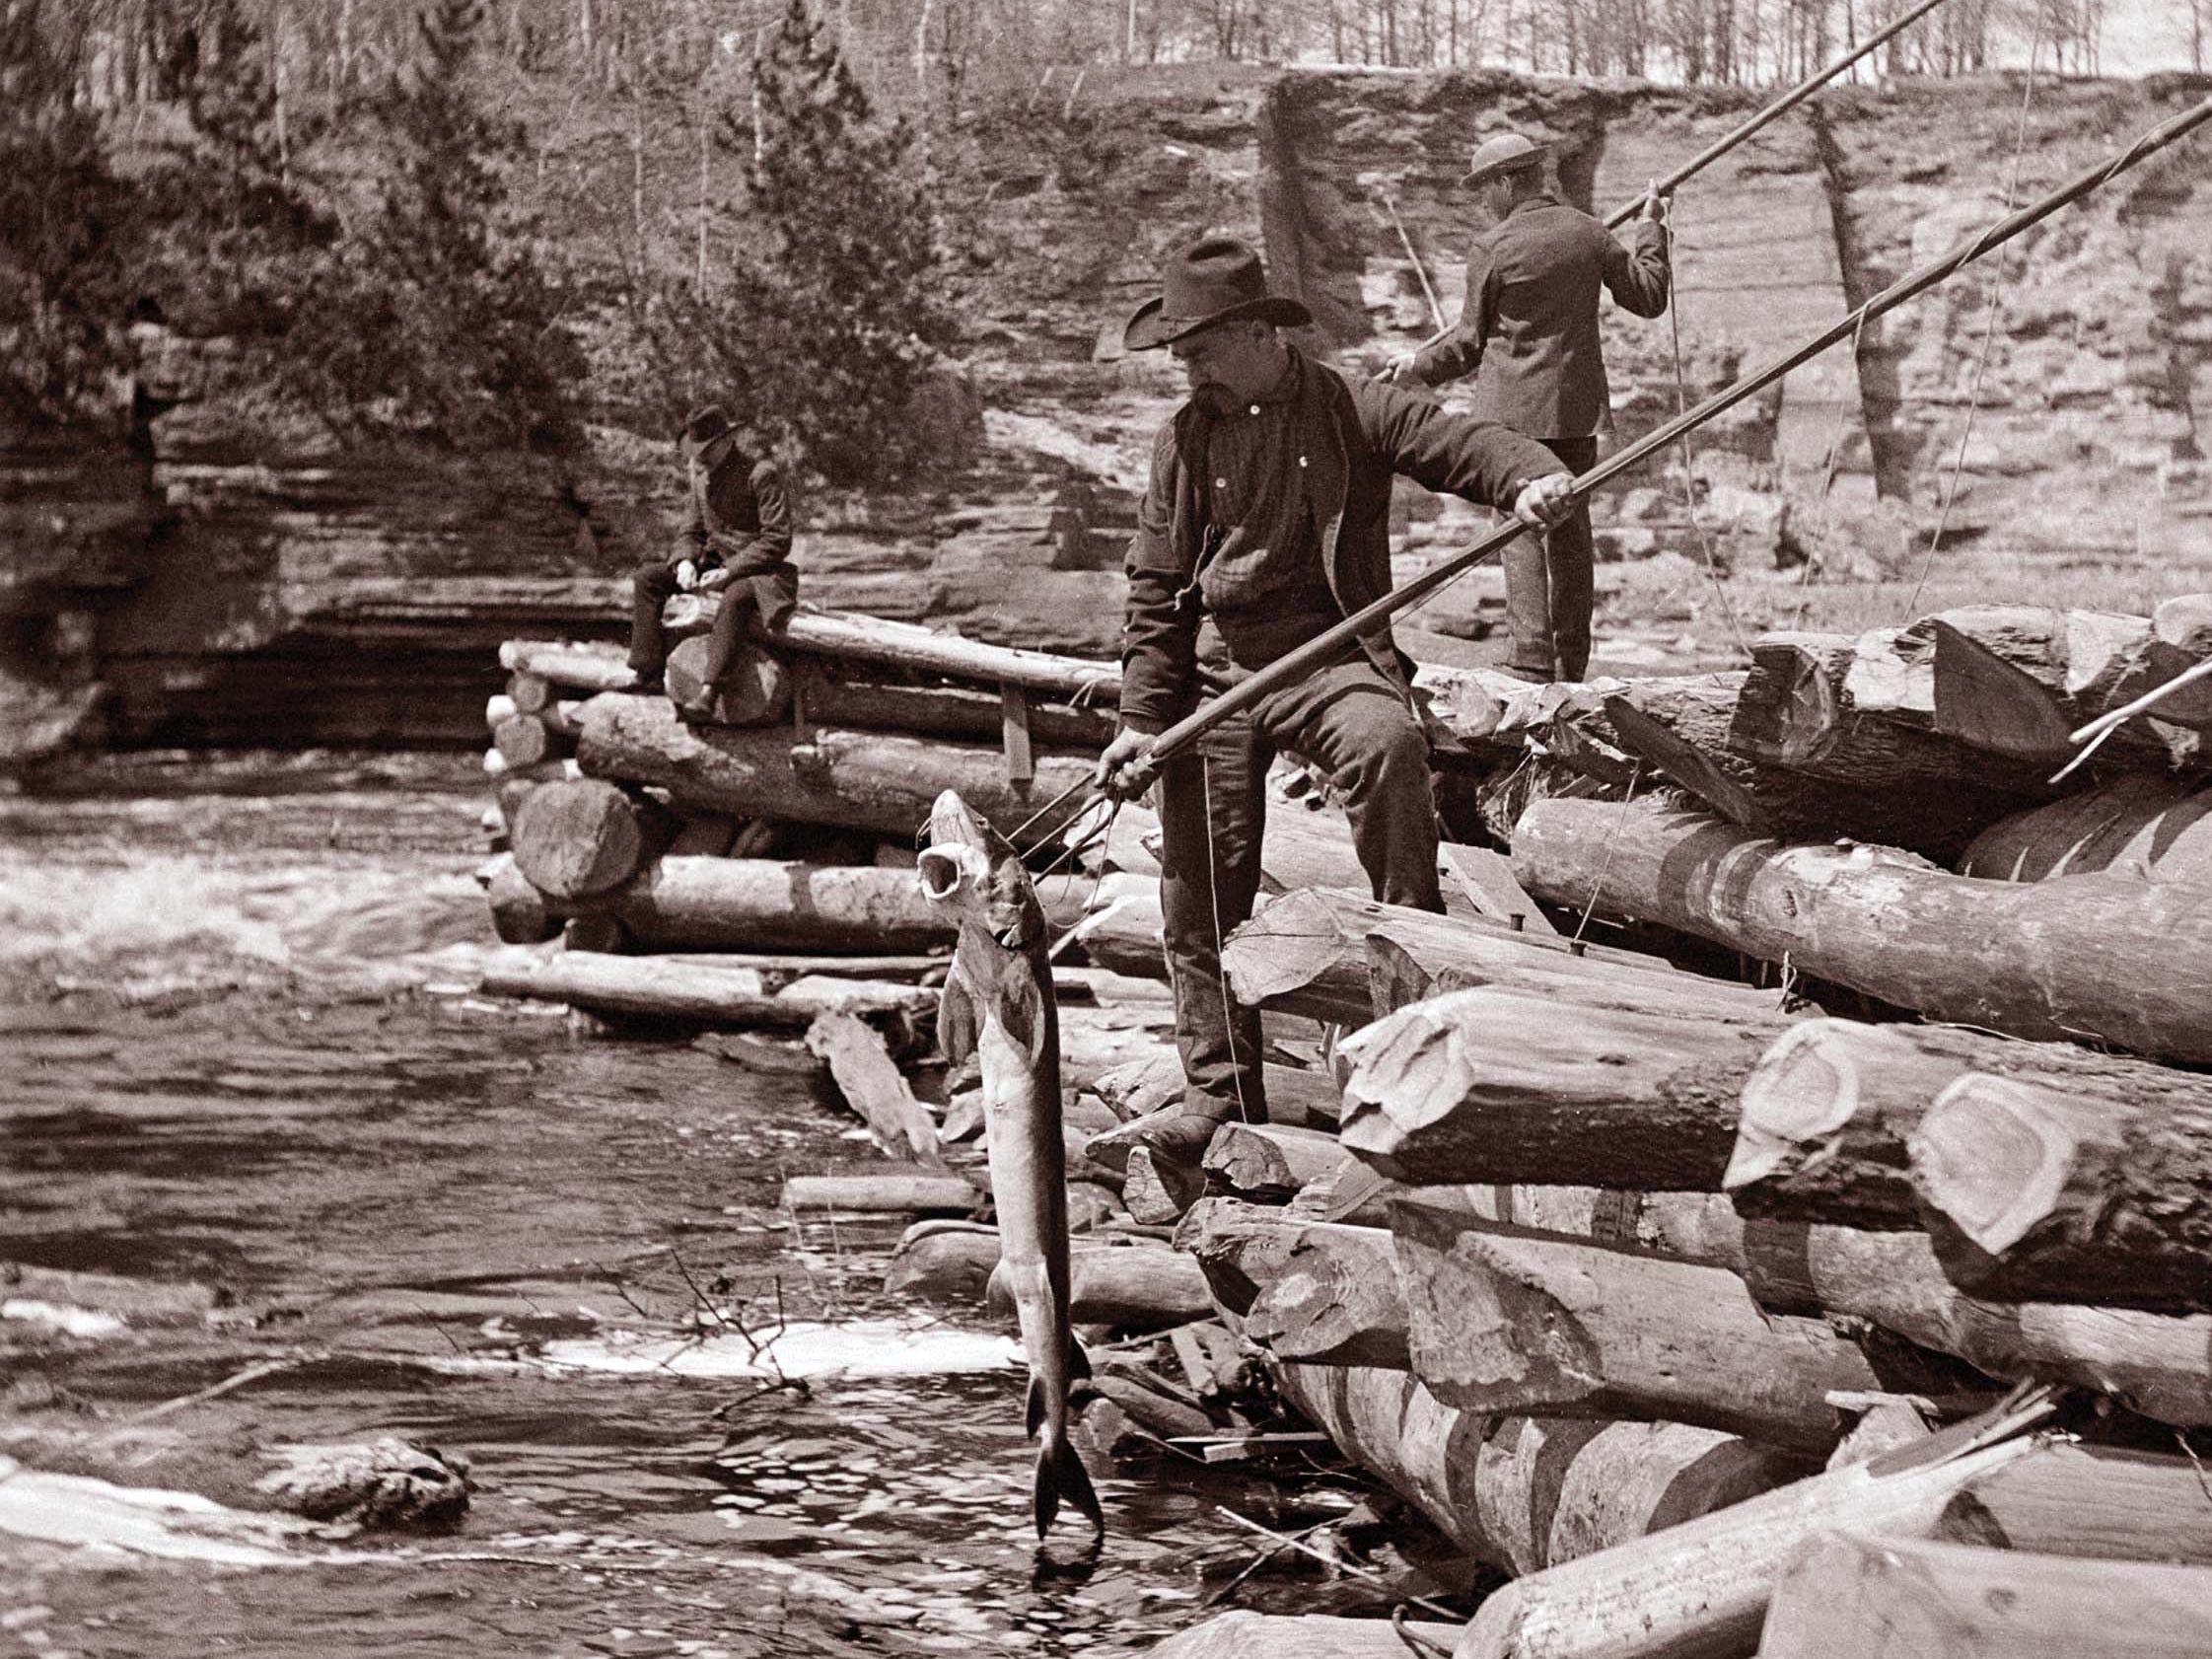 Men spear sturgeon at the dame in Kilbourn (now Wisconsin Dells).  (Photo ID 7287)